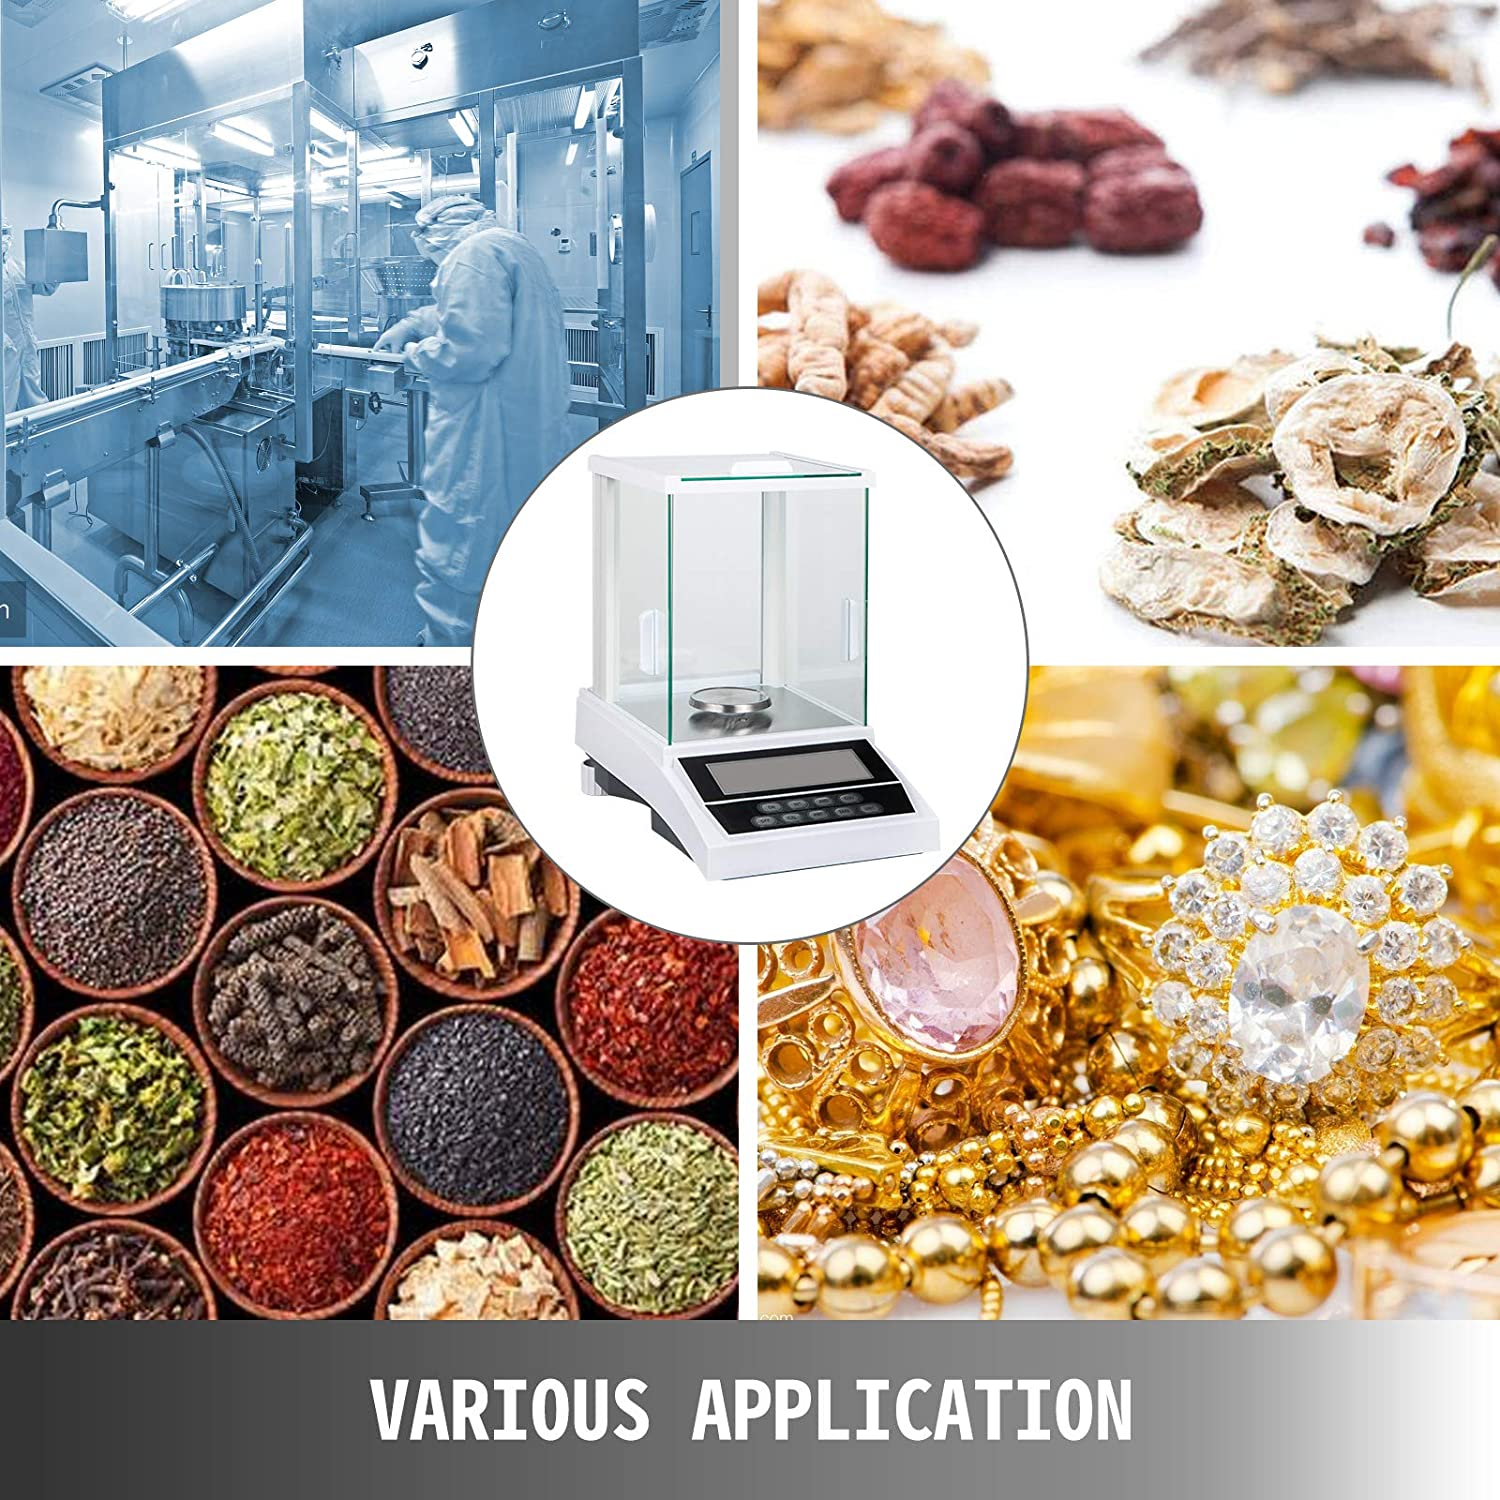 for Laboratory Pharmacy High Accuracy Balance with 80 mm Pallet Digital Scientific Lab Scale VEVOR Analytical Balance 120g x 0.1 mg Analytical Scale High Precision Electronic Analytical Balance